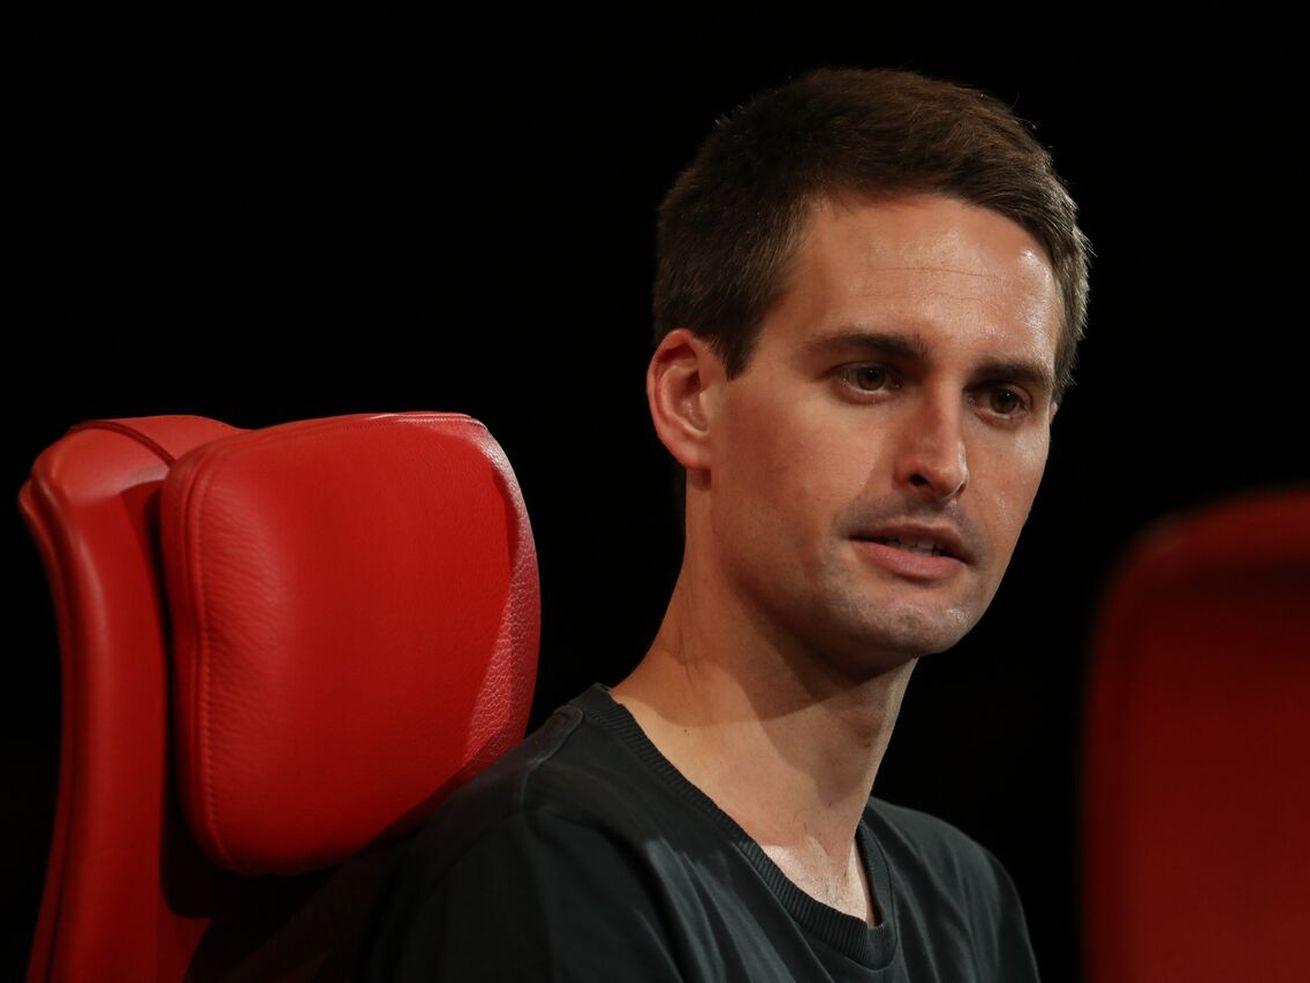 Has Snapchat already stopped growing? | Social, ONLY infoTech